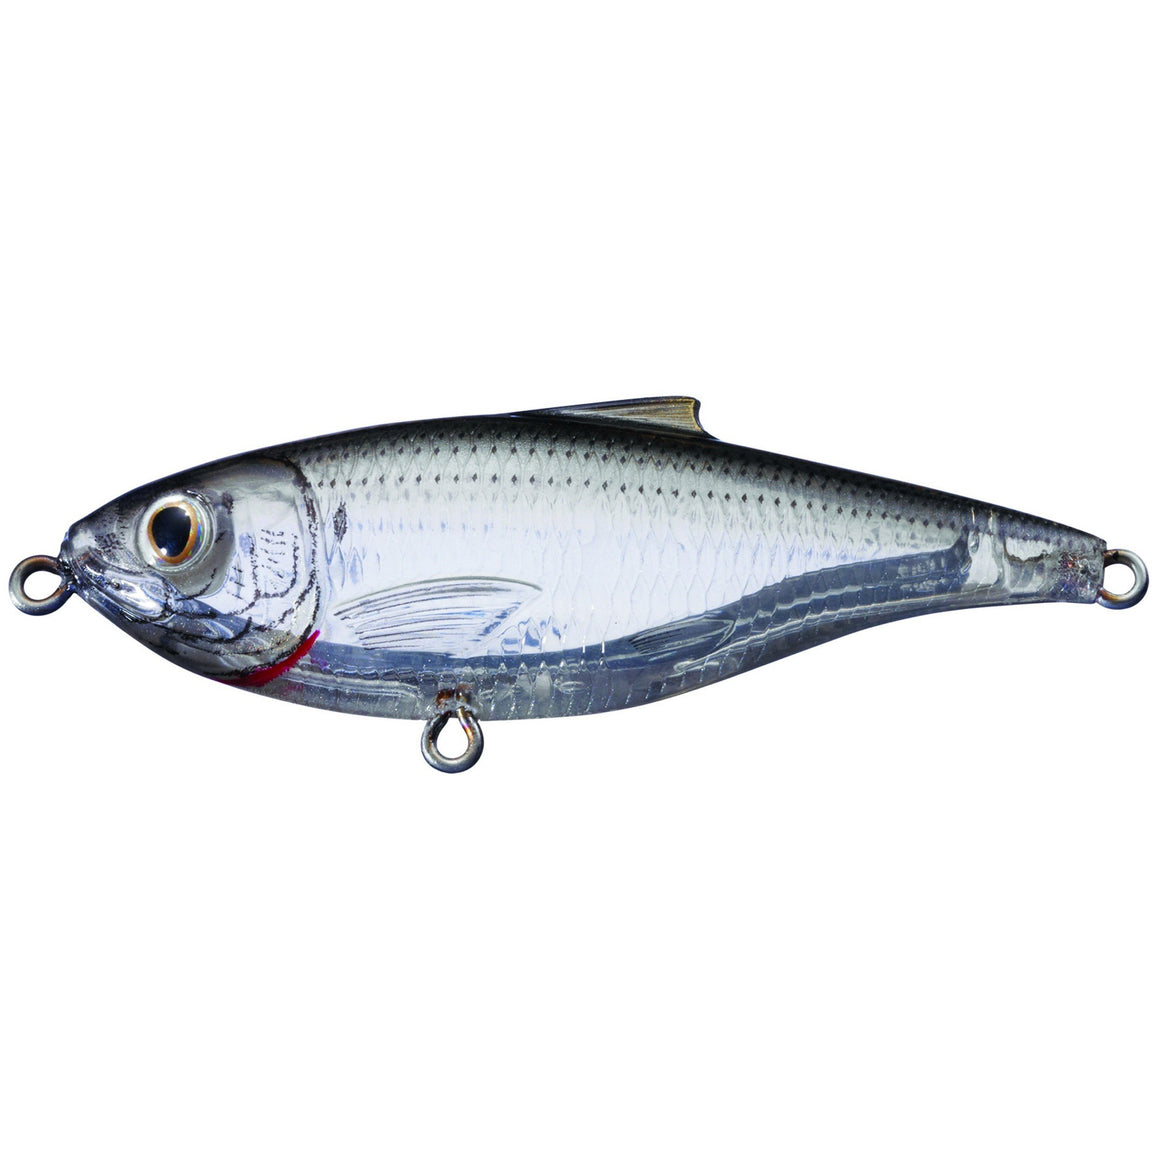 "LiveTarget Lures Scaled Sardine, Pilchard, Whitebait Twitchbait  Saltwater, 3"", #6 Hook, 0'-1' Depth,Ghost/Natural"